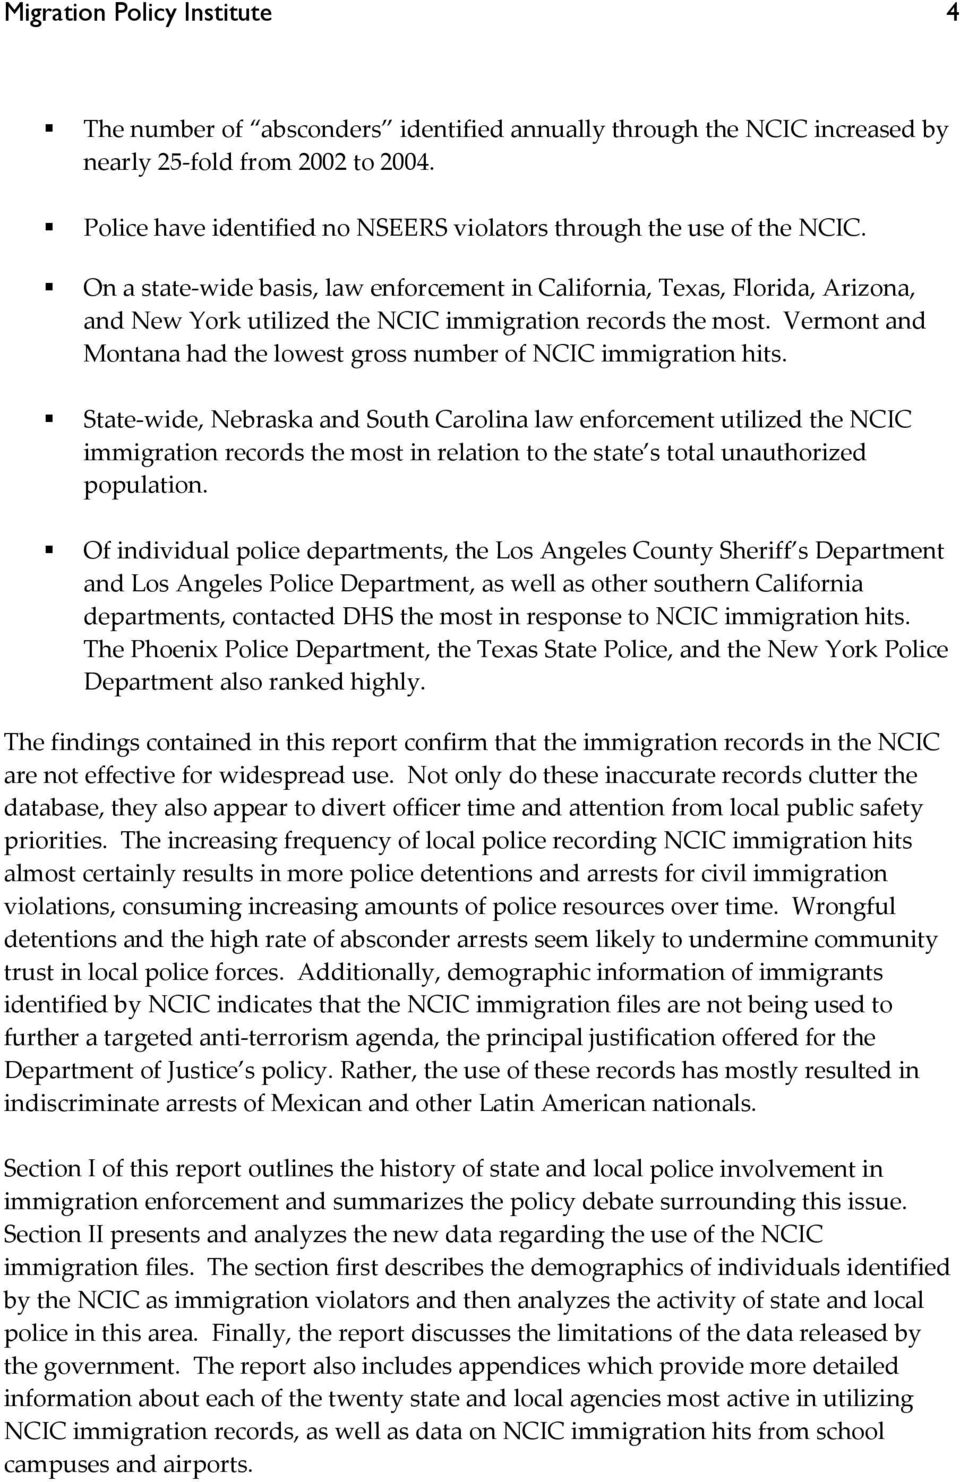 On a state wide basis, law enforcement in California, Texas, Florida, Arizona, and New York utilized the NCIC immigration records the most.